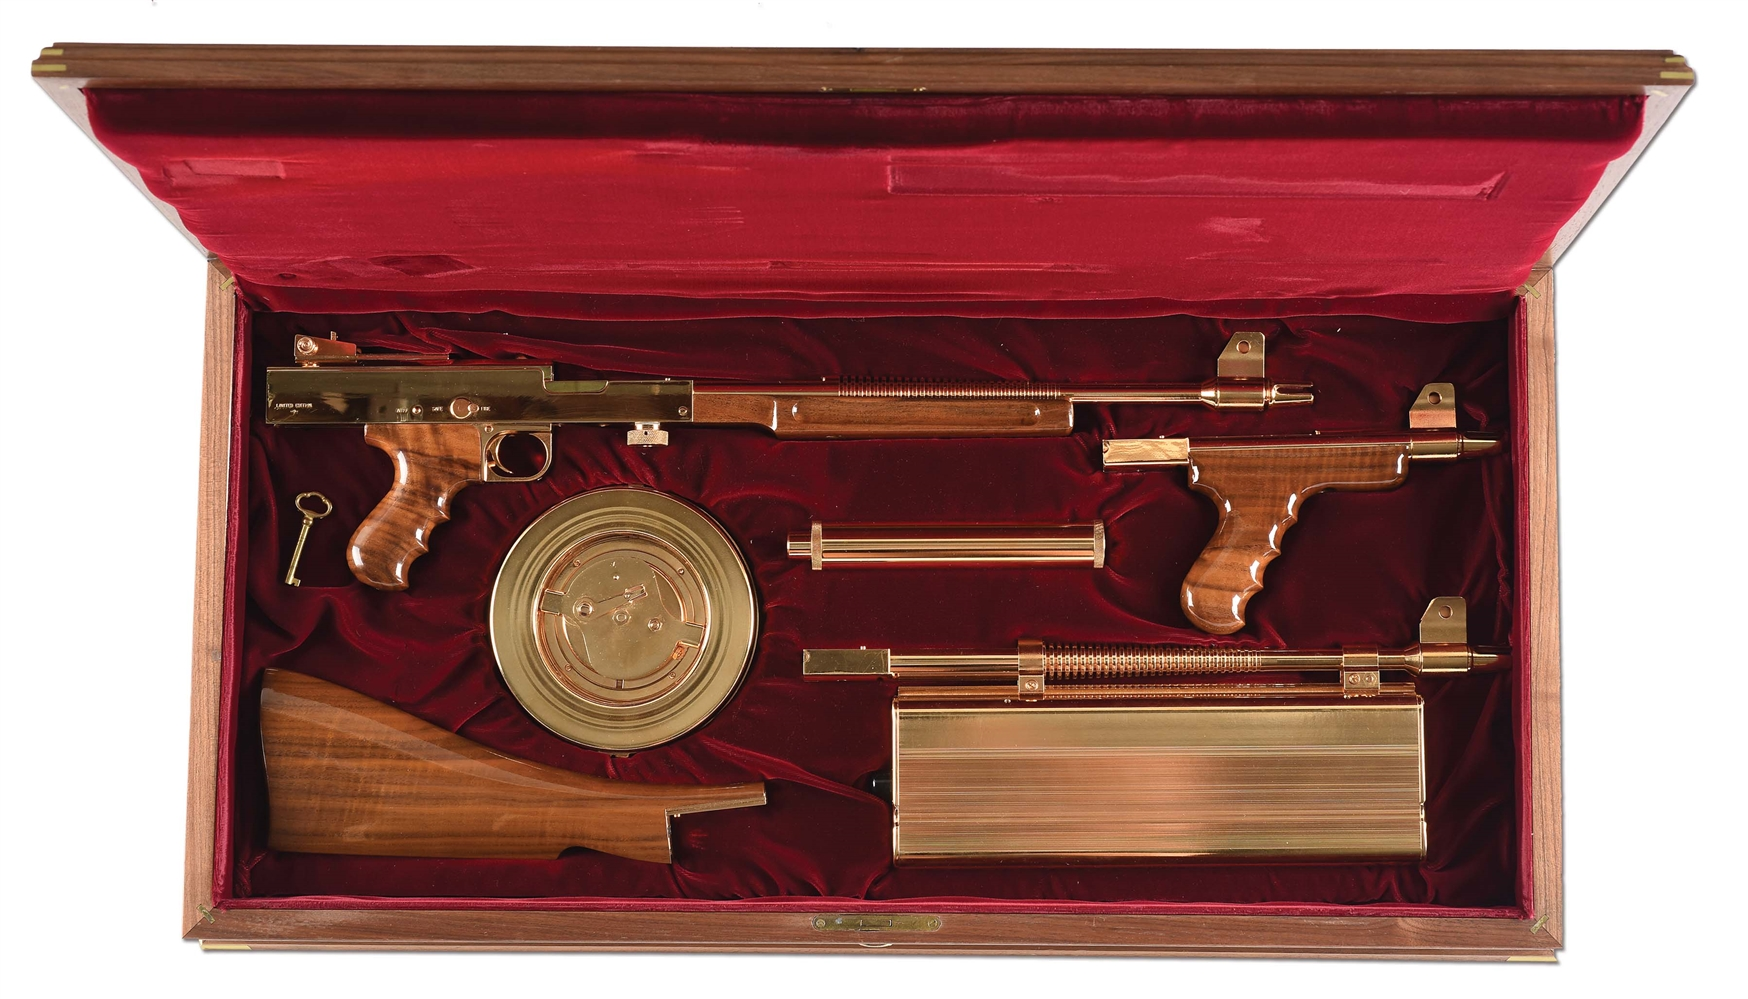 (N) ABSOLUTELY MAGNIFICENT UNFIRED GOLD M-2 LIMITED EDITION AMERICAN ARMS – AMERICAN 180 MACHINE GUN WITH LASER-LOK SIGHT, SILENCER, AND ORIGINAL FACTORY WOODEN DISPLAY CASE (FULLY TRANSFERABLE)